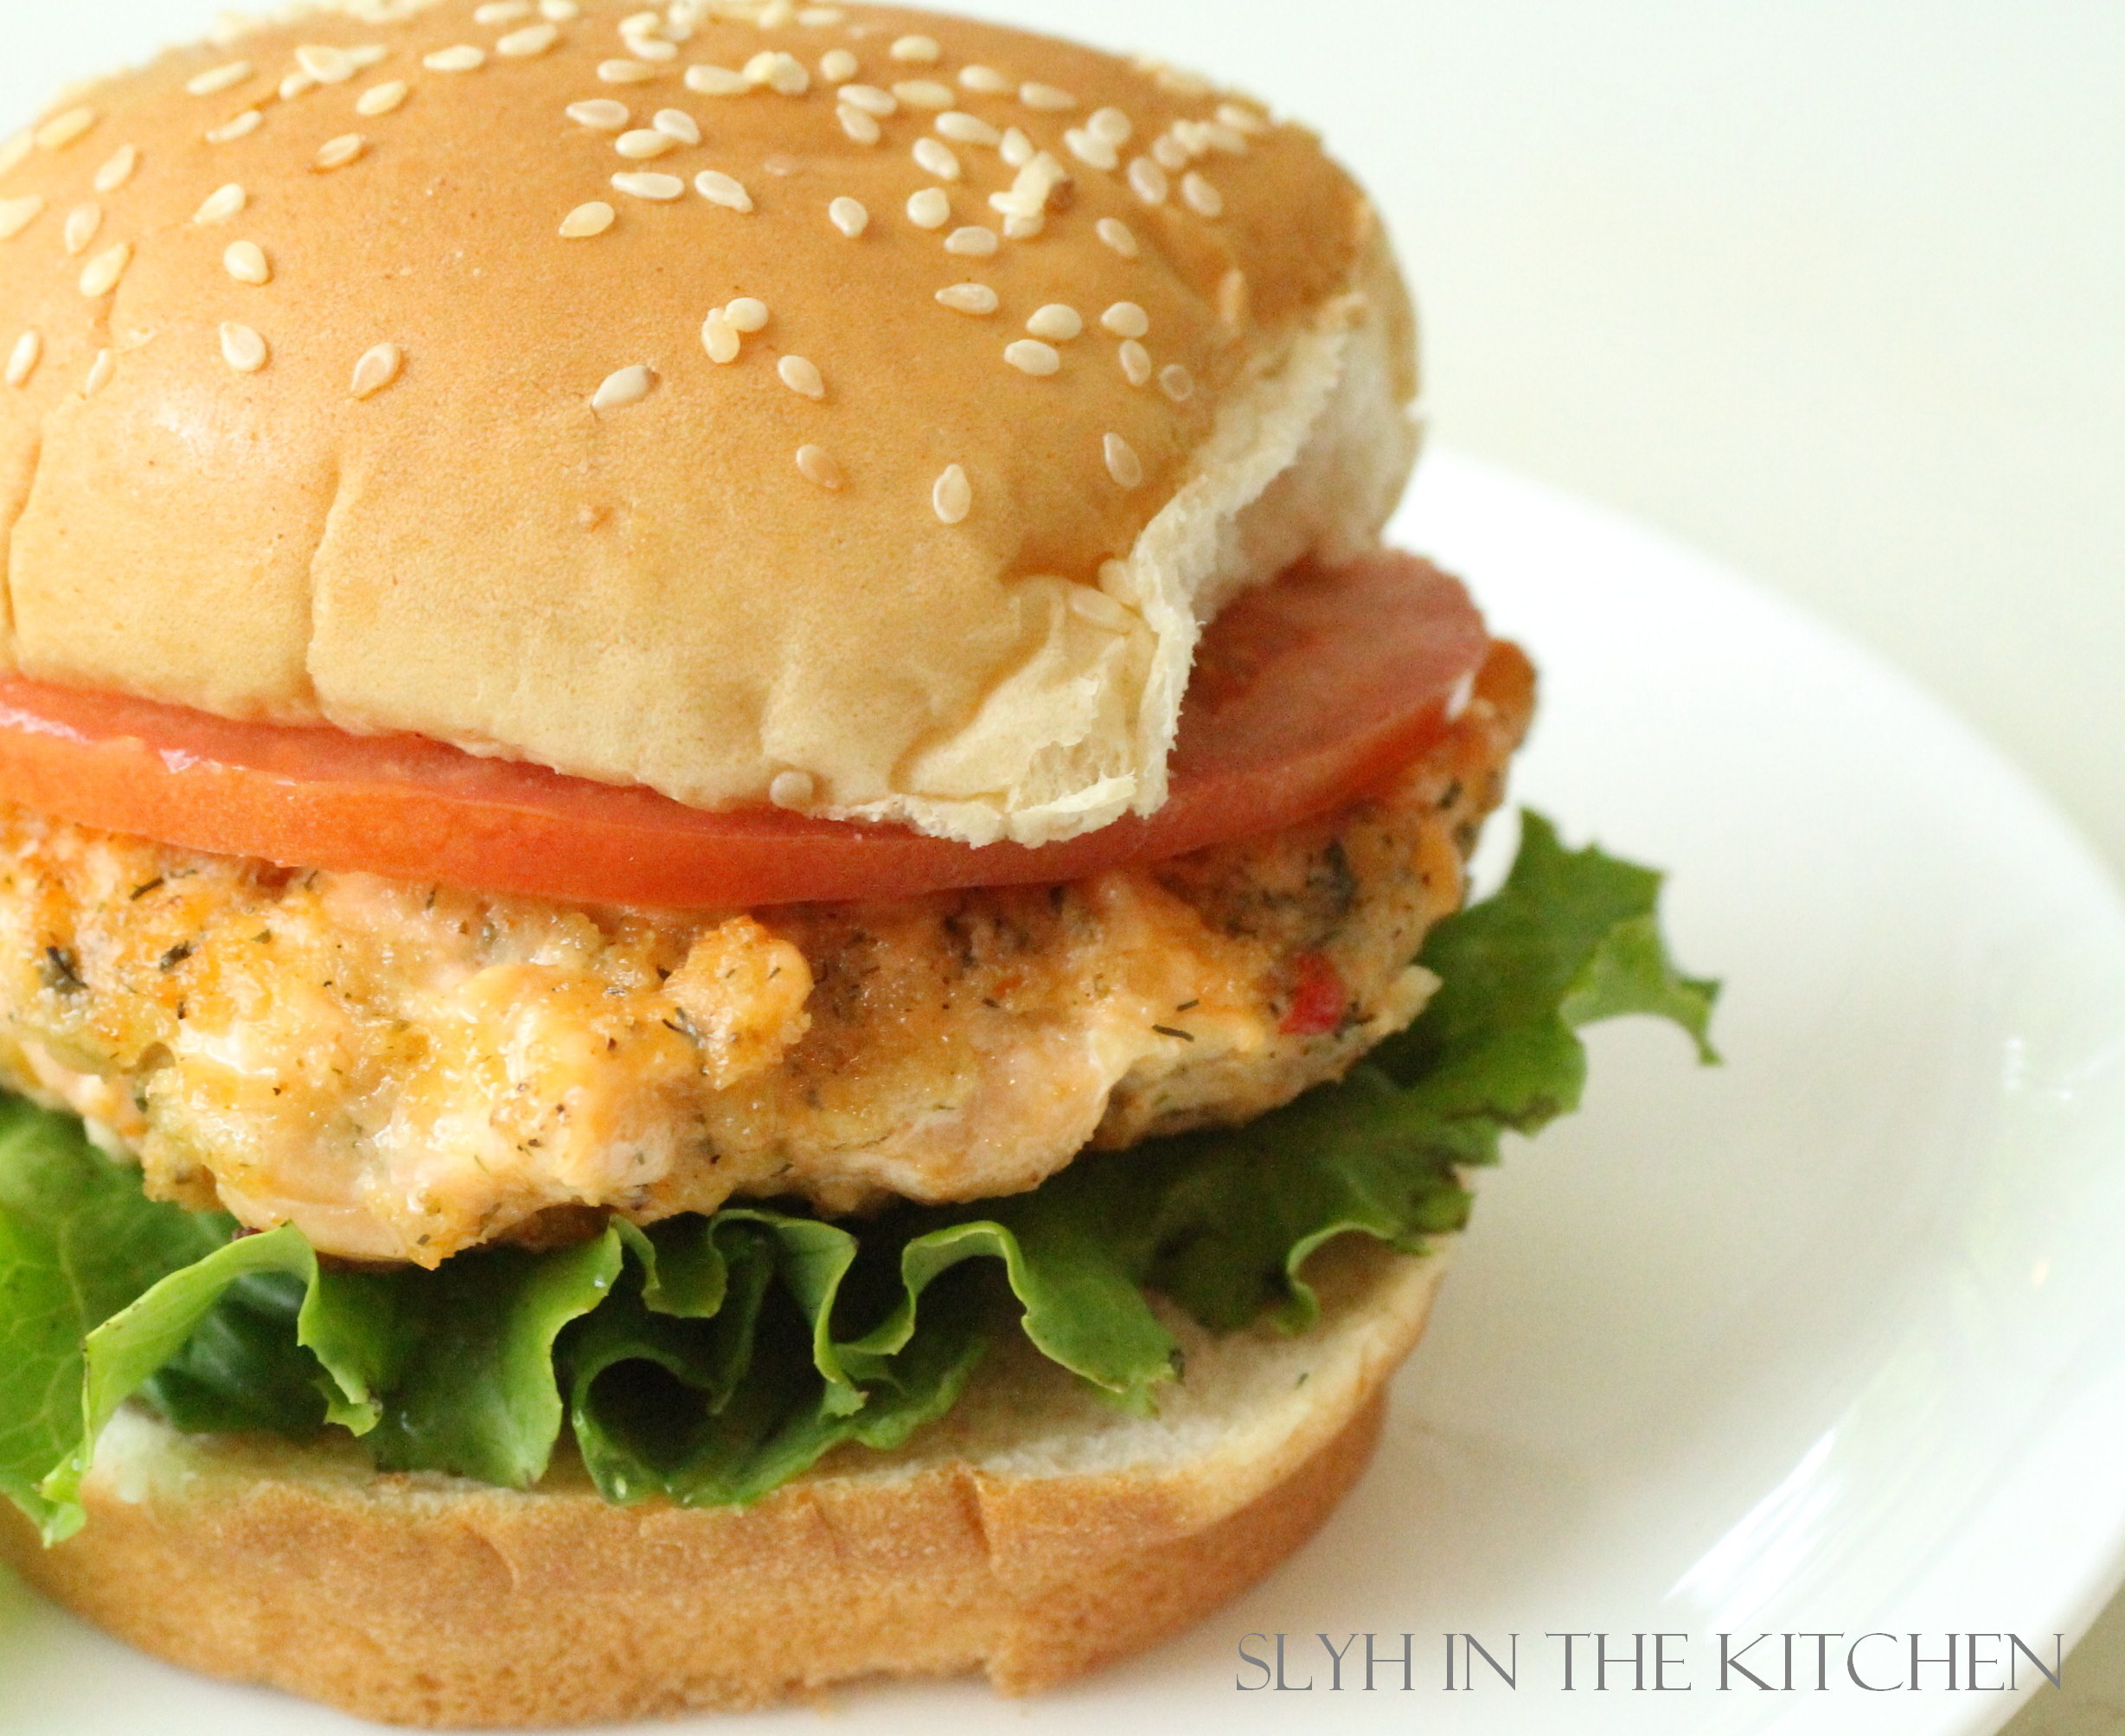 salmon burgers slyh in the kitchen